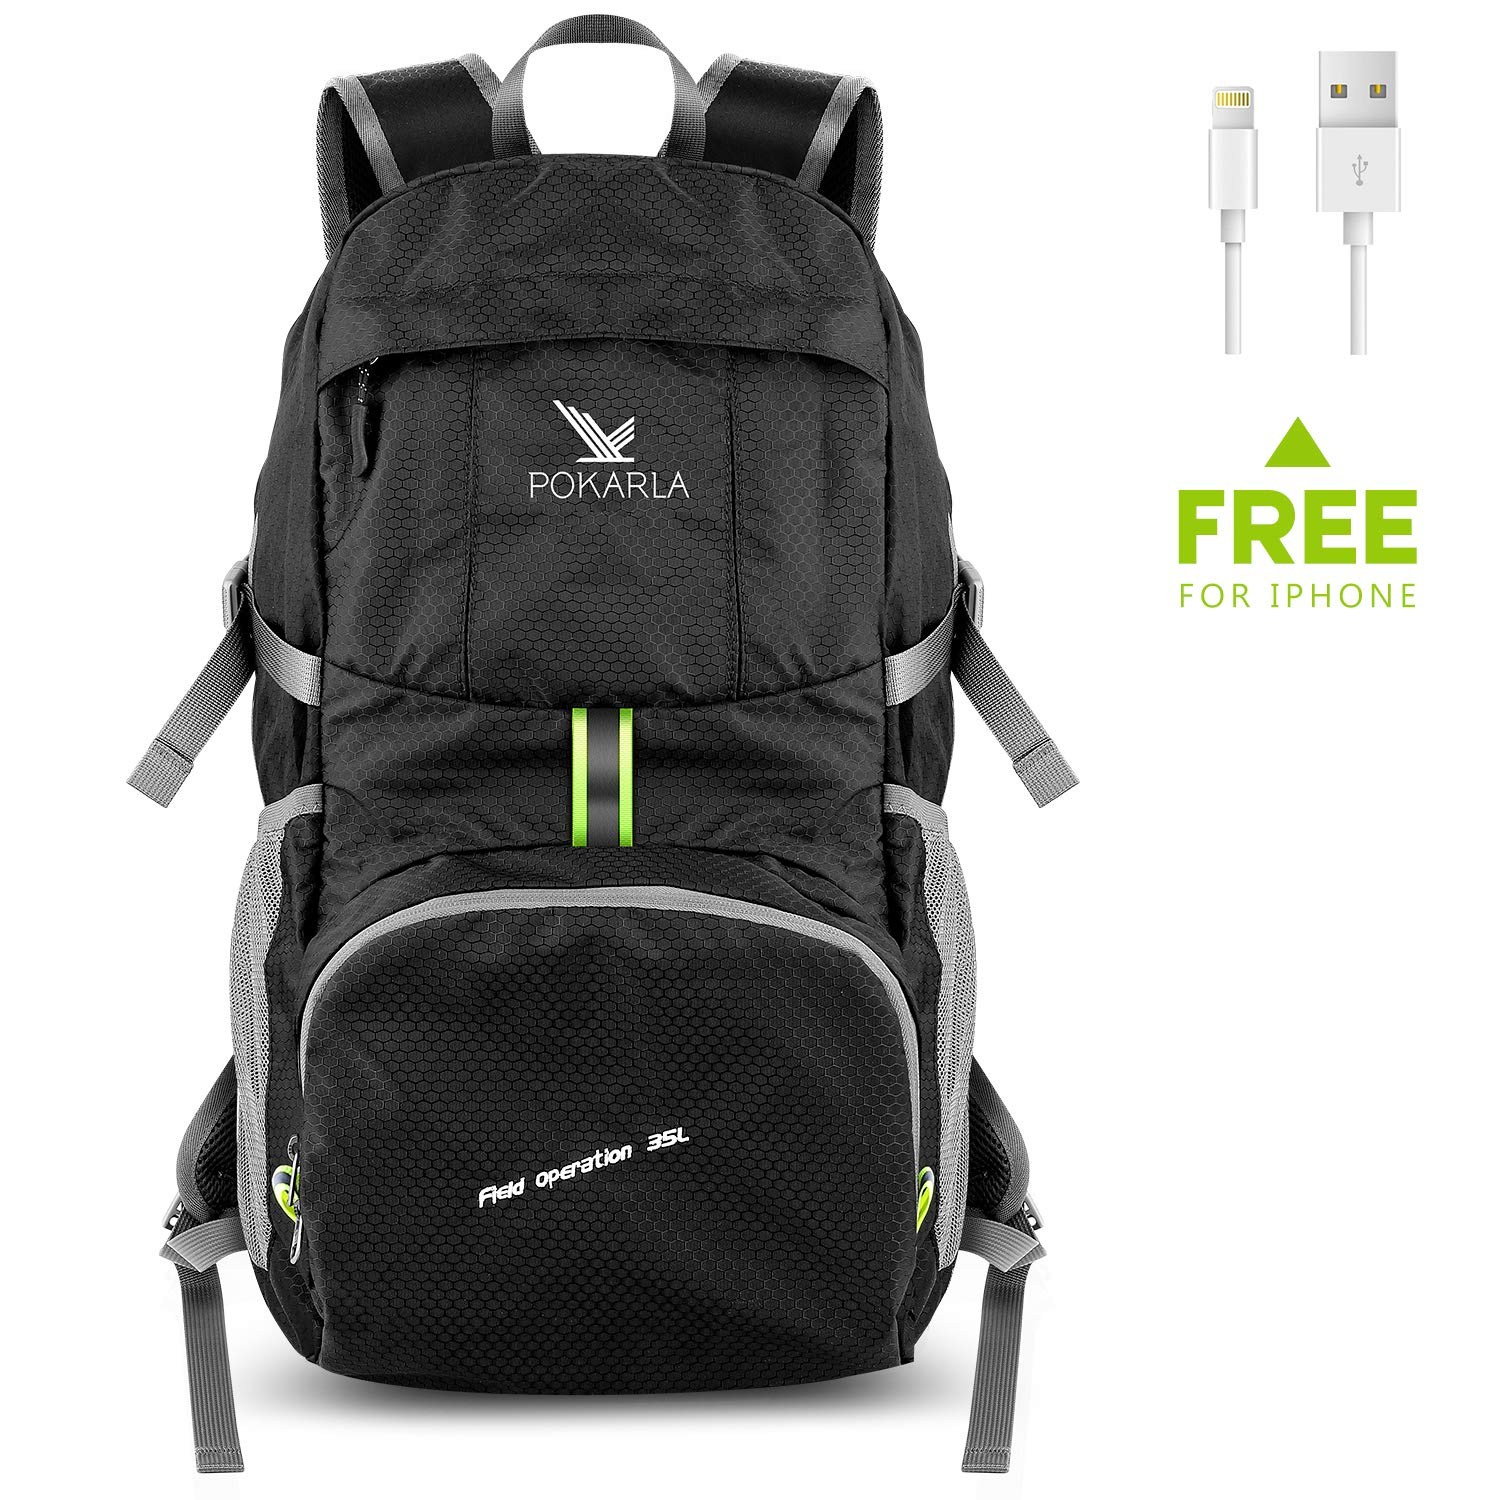 Pokarla Foldable Durable Travel Hiking Backpack 35L Ultra Lightweight Packable Carry On Daypack Unisex for Outdoor Sports Black